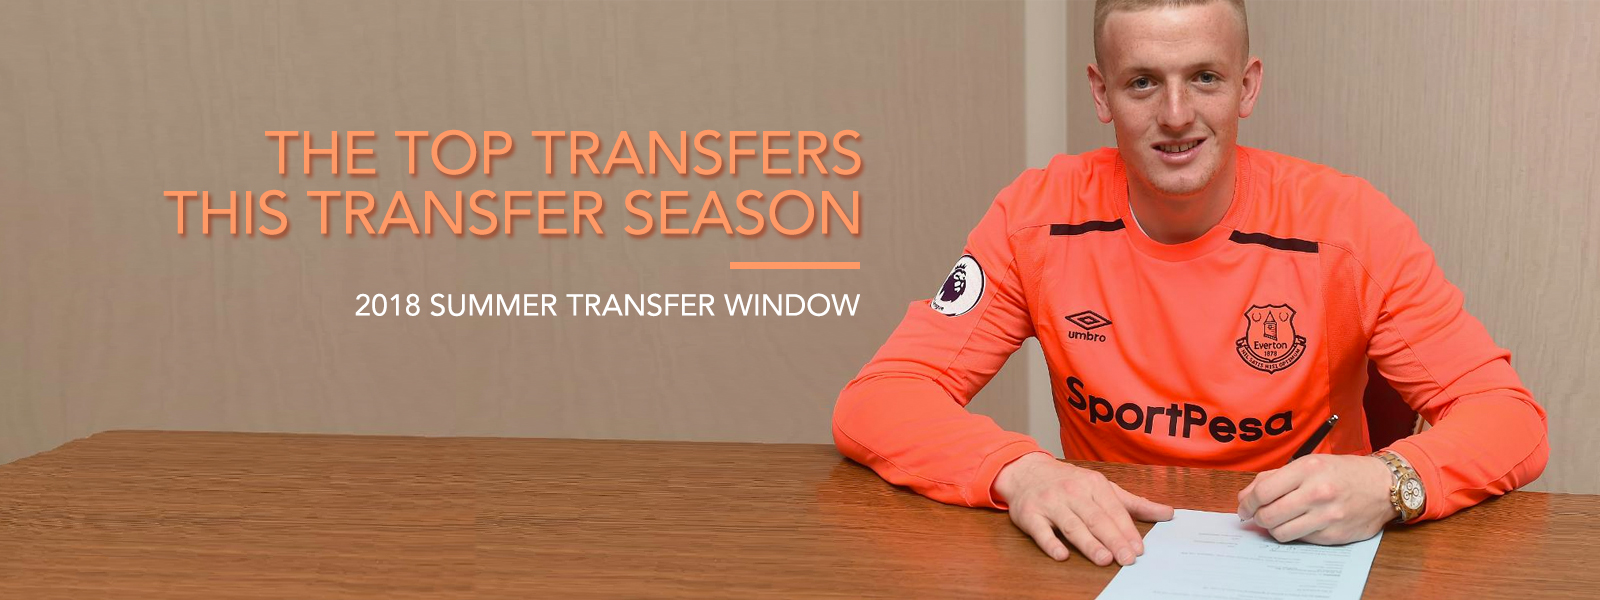 Top 3 Player Transfer Reviews In 2018 Summer Transfer Window